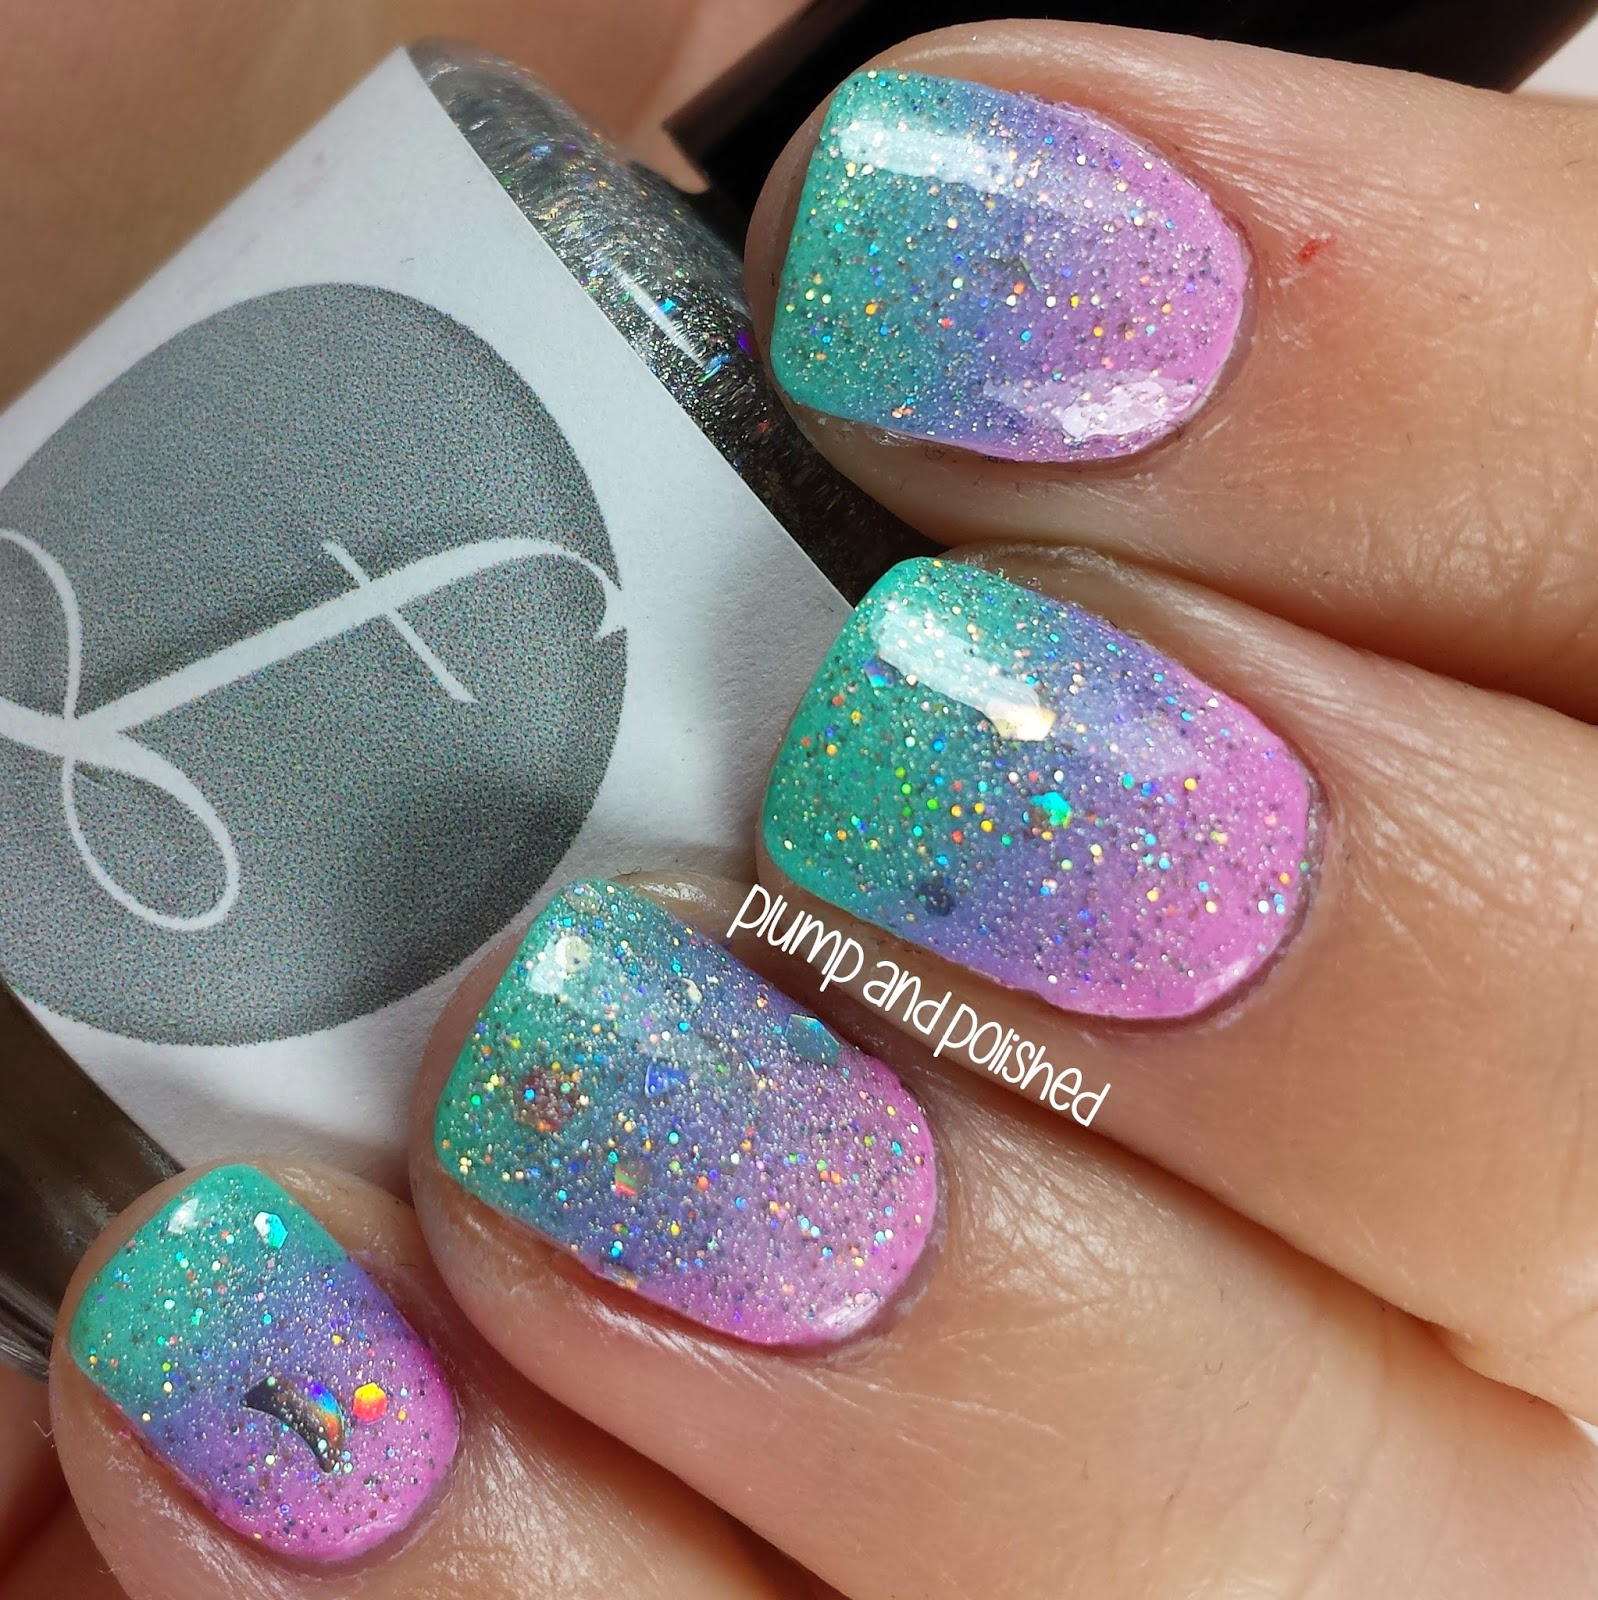 Q Riouser Q Riouser Nail Art: Plump And Polished: The Beauty Buffs: Pastels